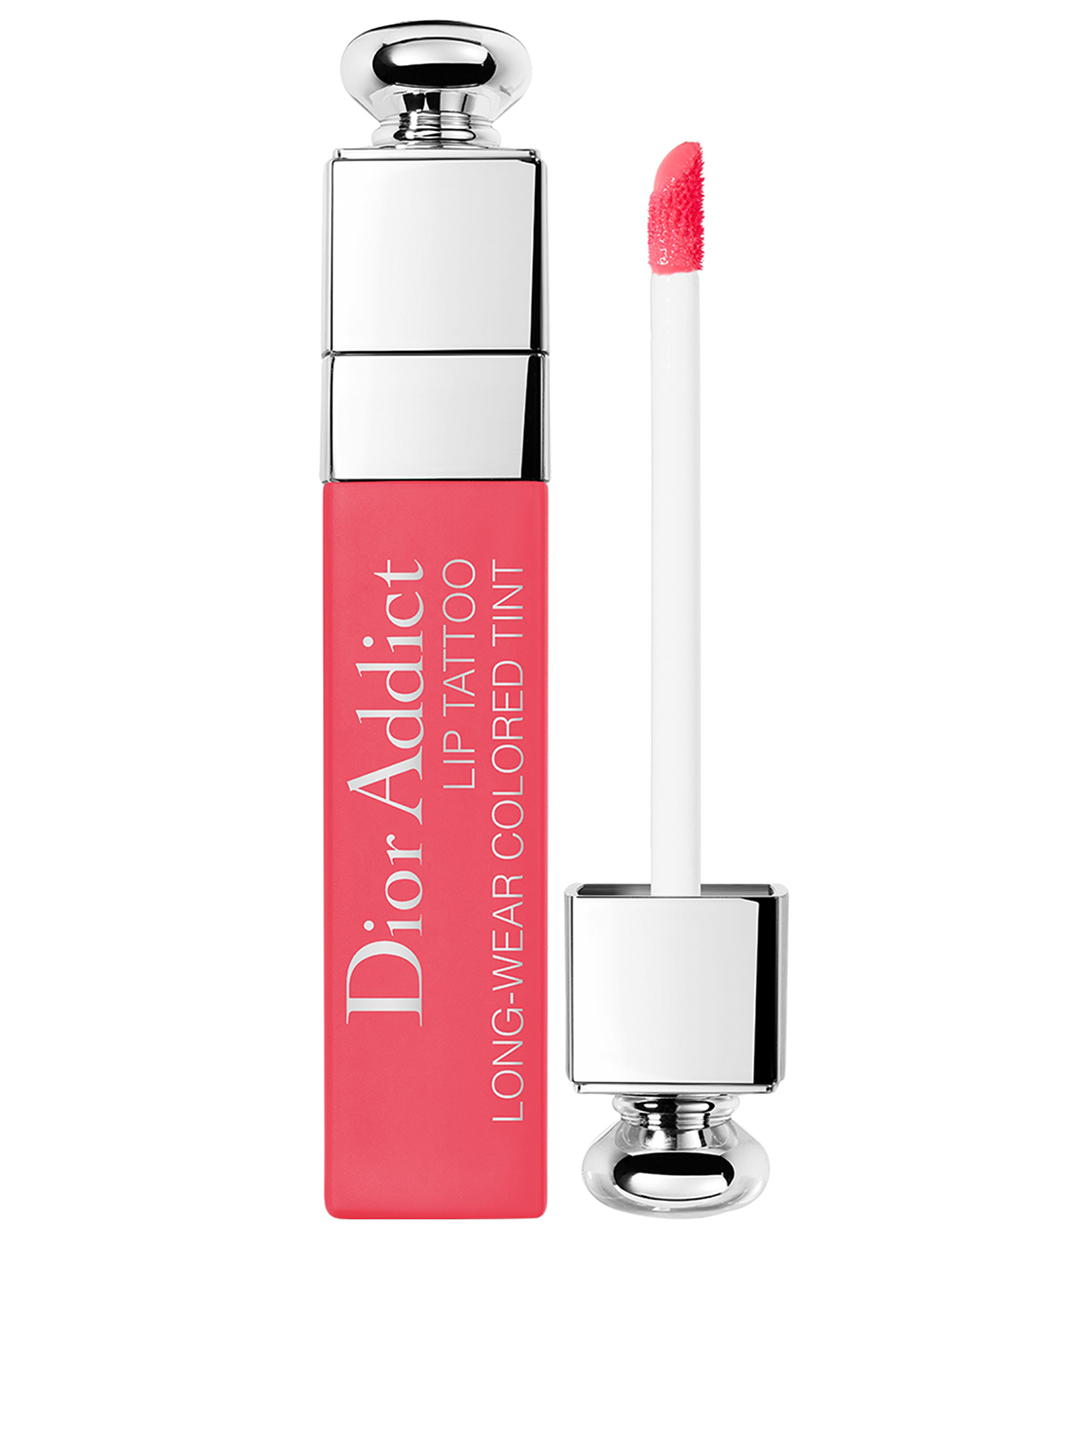 DIOR Dior Addict Lip Tattoo Color Juice - Limited Edition Beauty Pink